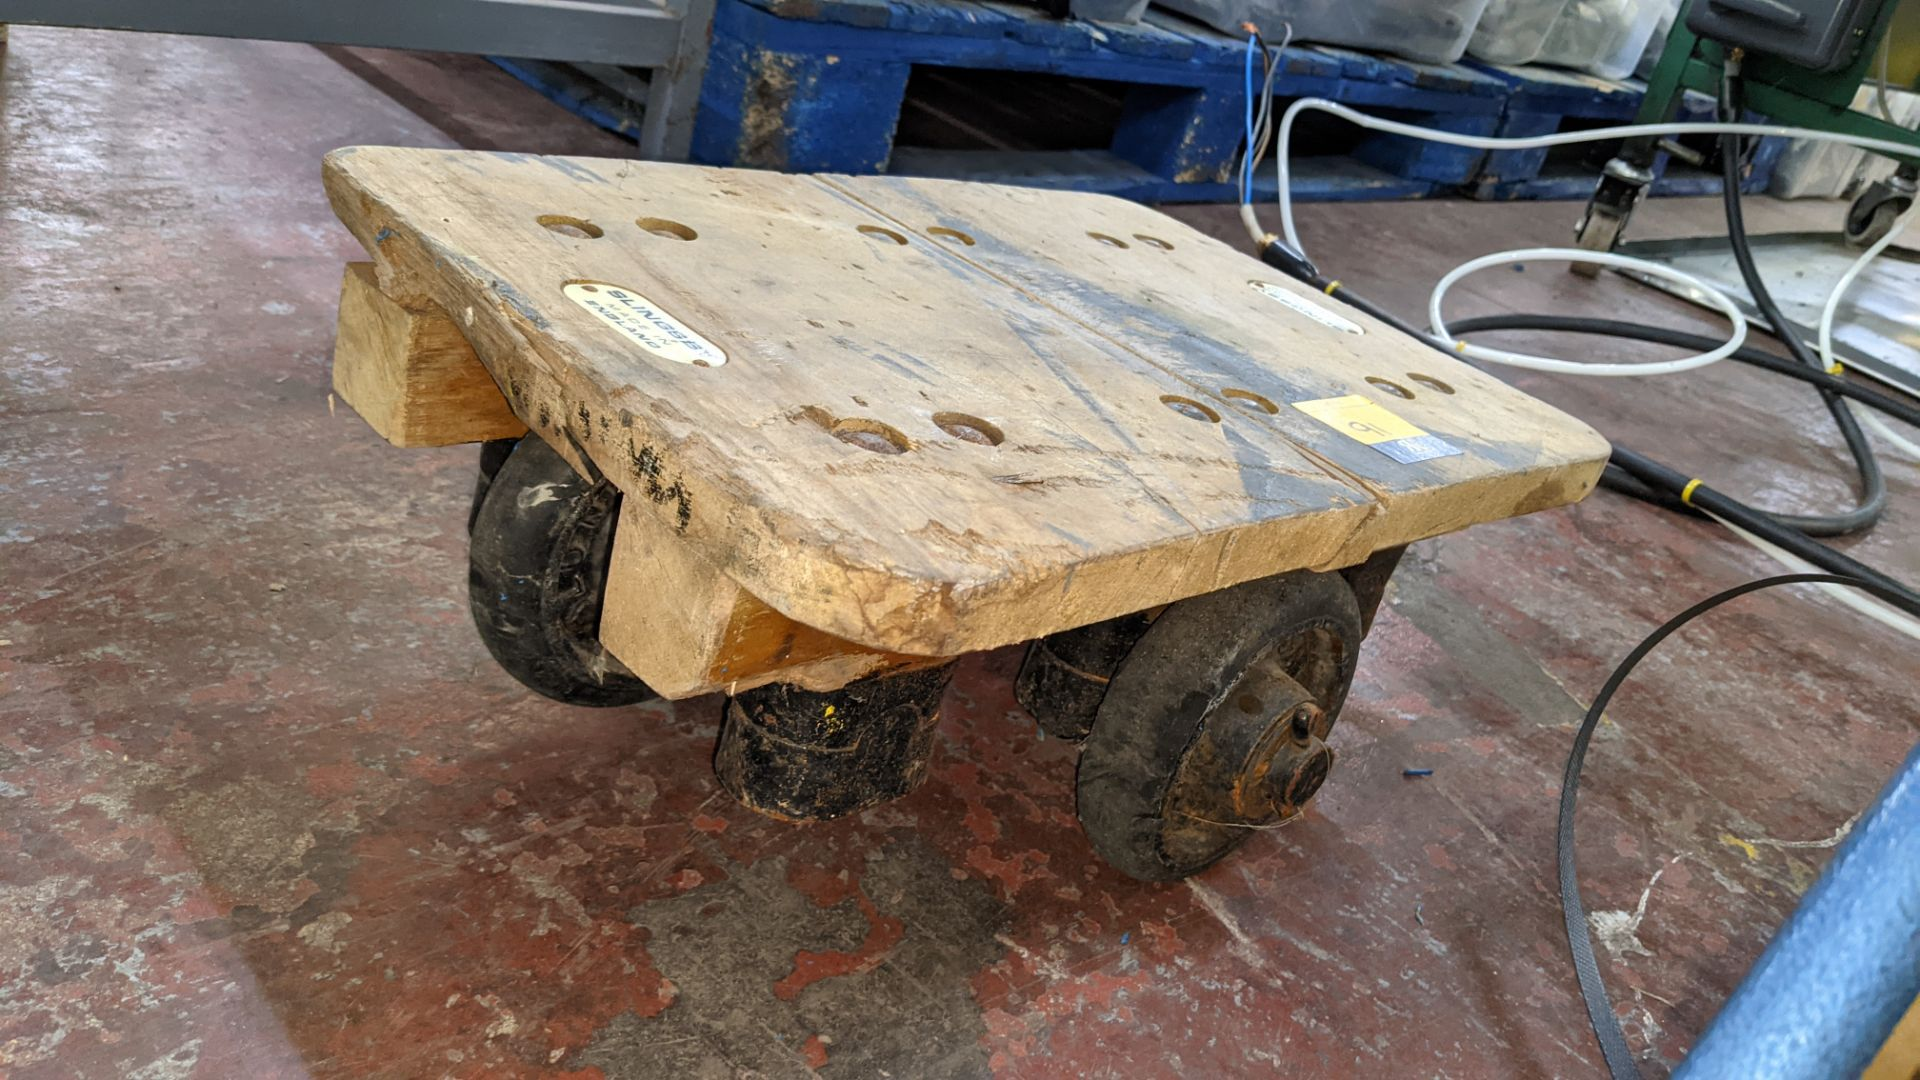 Slingsby small 4 wheel dolly - platform 460mm x 310mm - Image 3 of 5